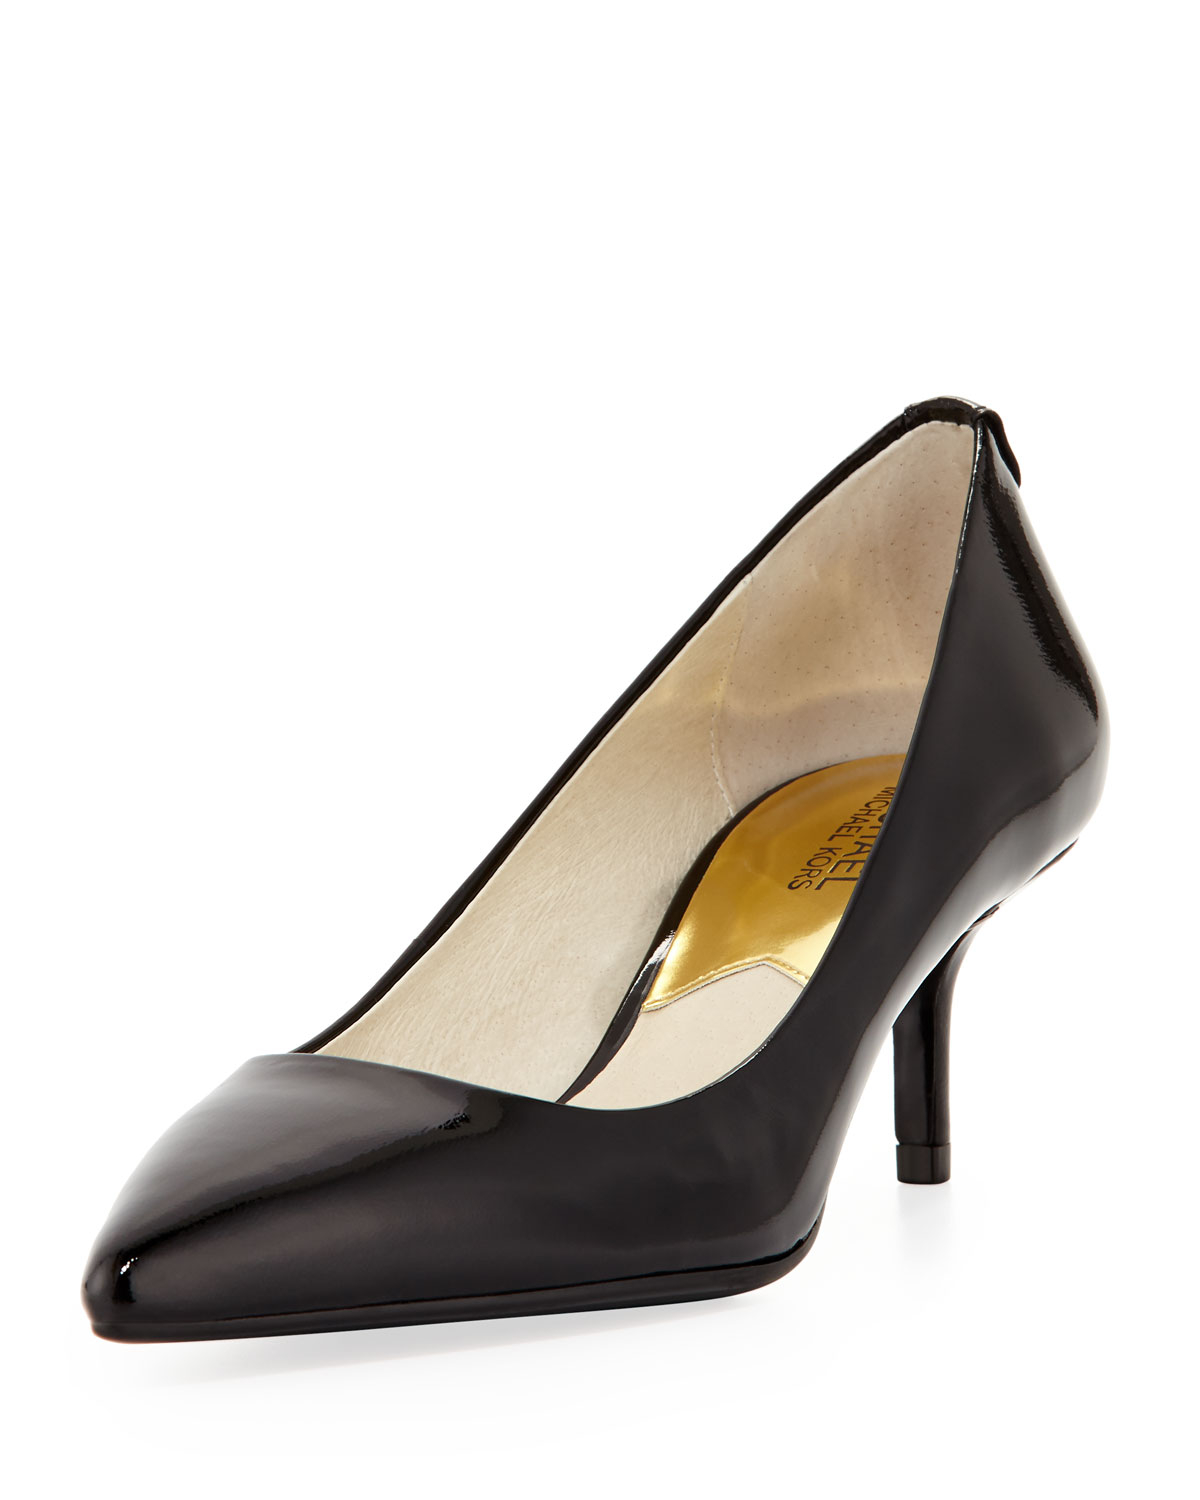 Find the latest styles of women's heels and pumps at sashimicraft.ga where you'll also find free shipping on all fashion footwear. Start shopping today! Shoes; Heels & Pumps; Heels & Pumps. Page Filters Departments. Boots () Flats () Heels & Pumps ( Charles by Charles David Dare Kitten-Heel Pump. Charles by Charles David Dare Kitten.